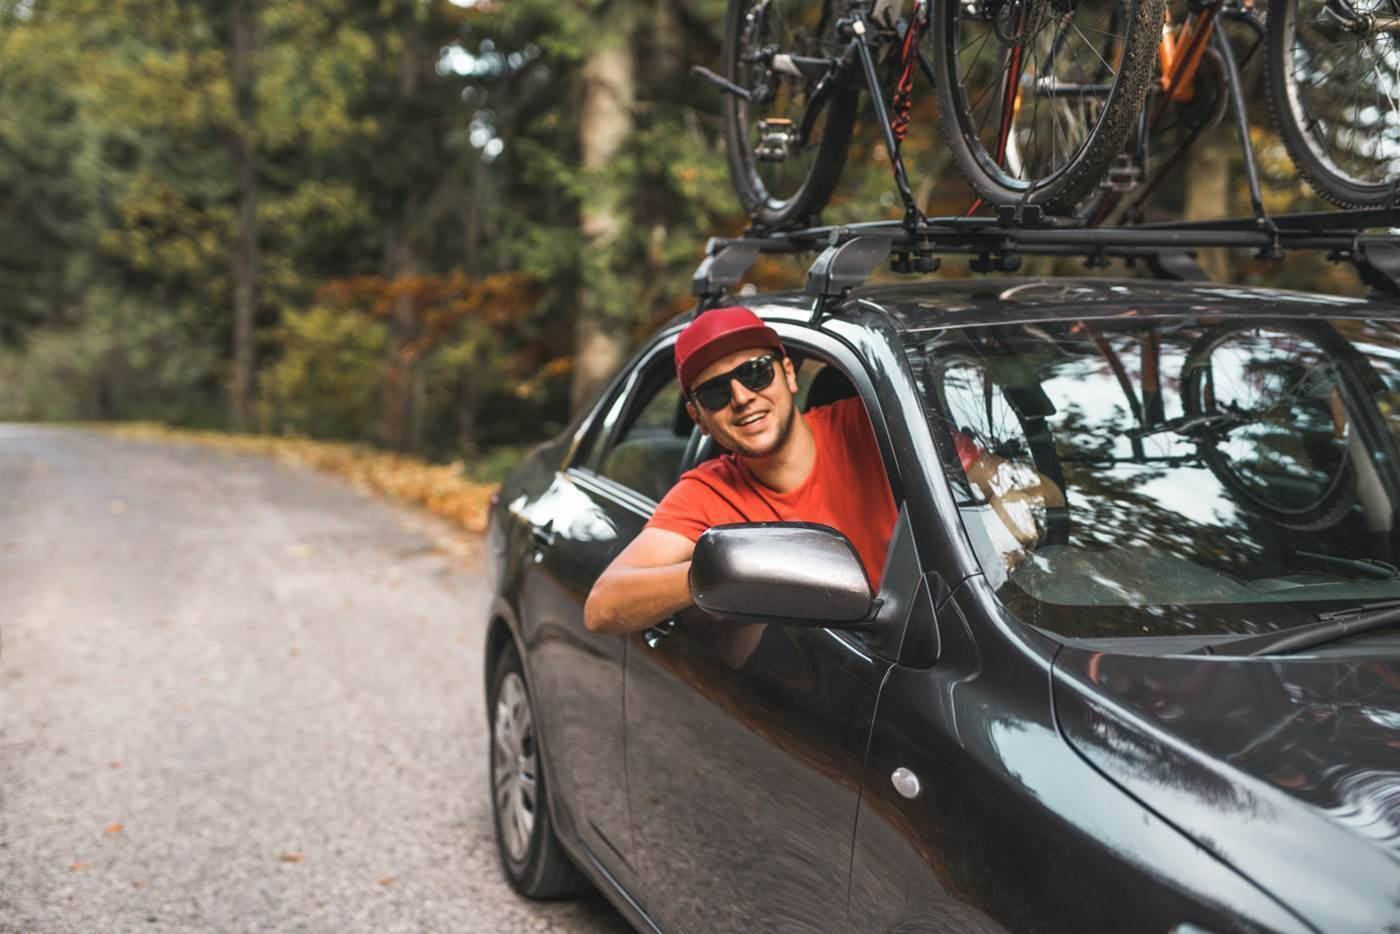 New study shows cyclists are safer behind the wheel